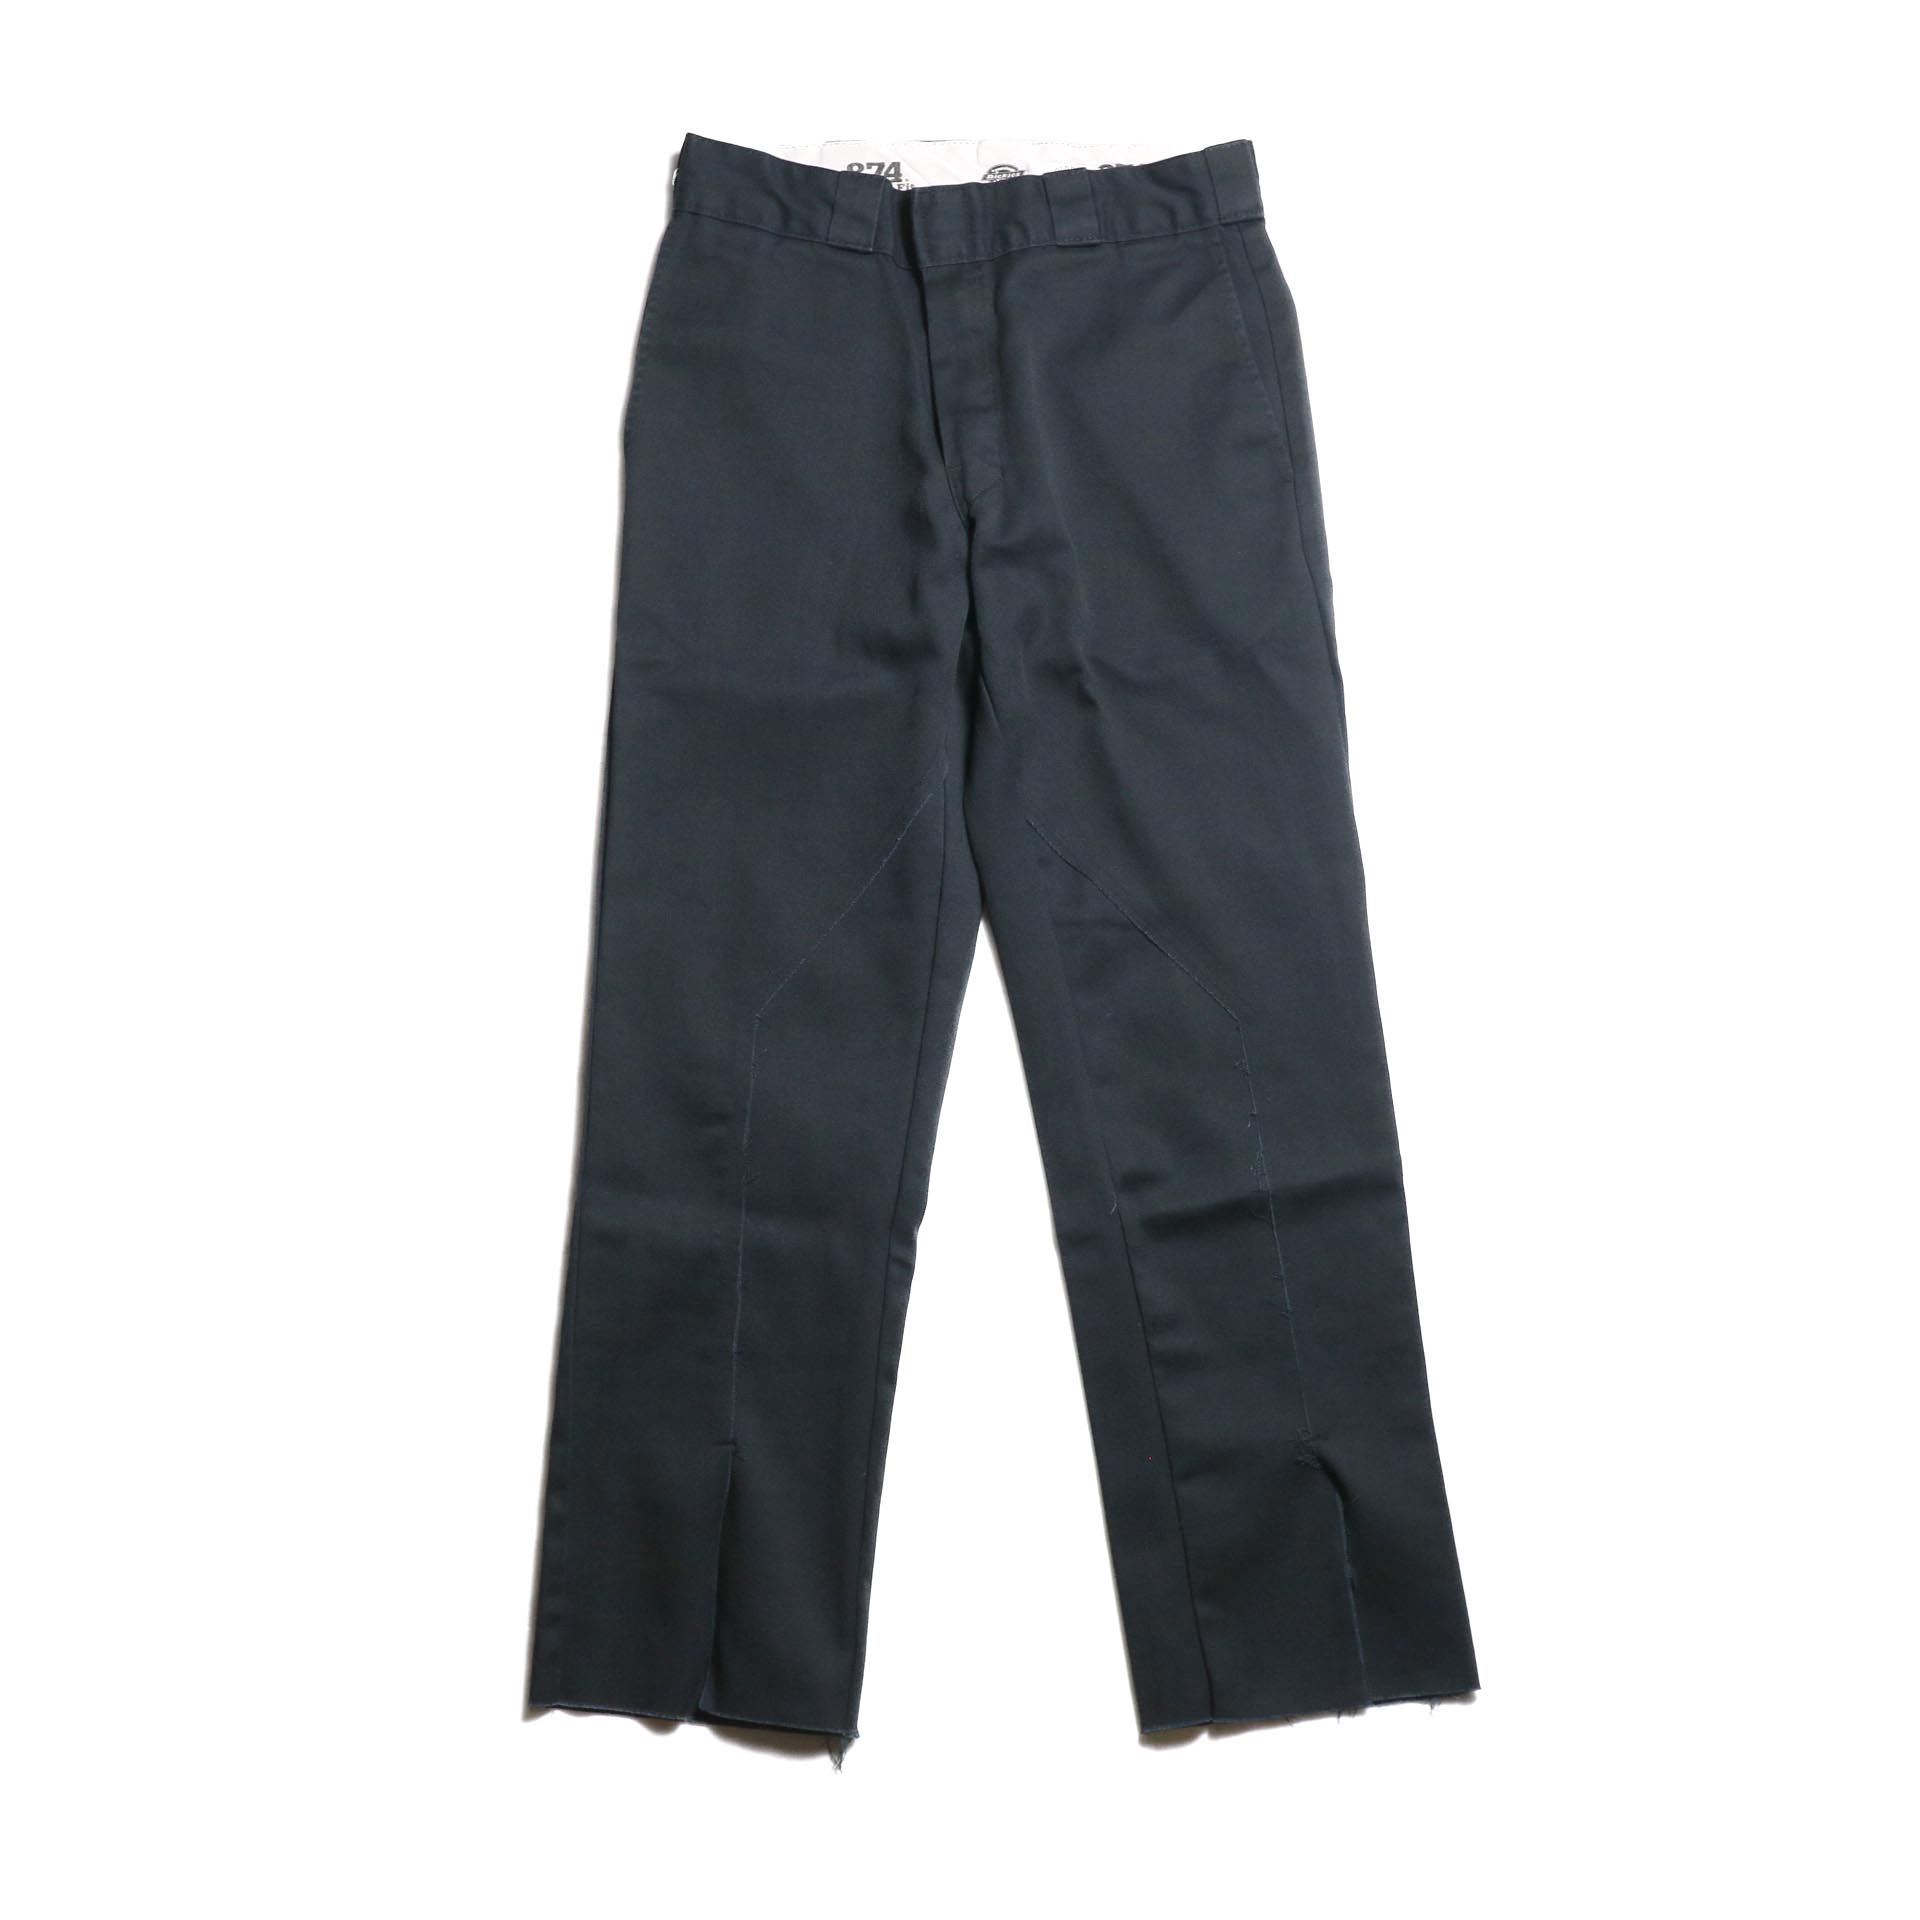 "OLD PARK / Slit Pants ""Dickies"" -Black (Ssize)"